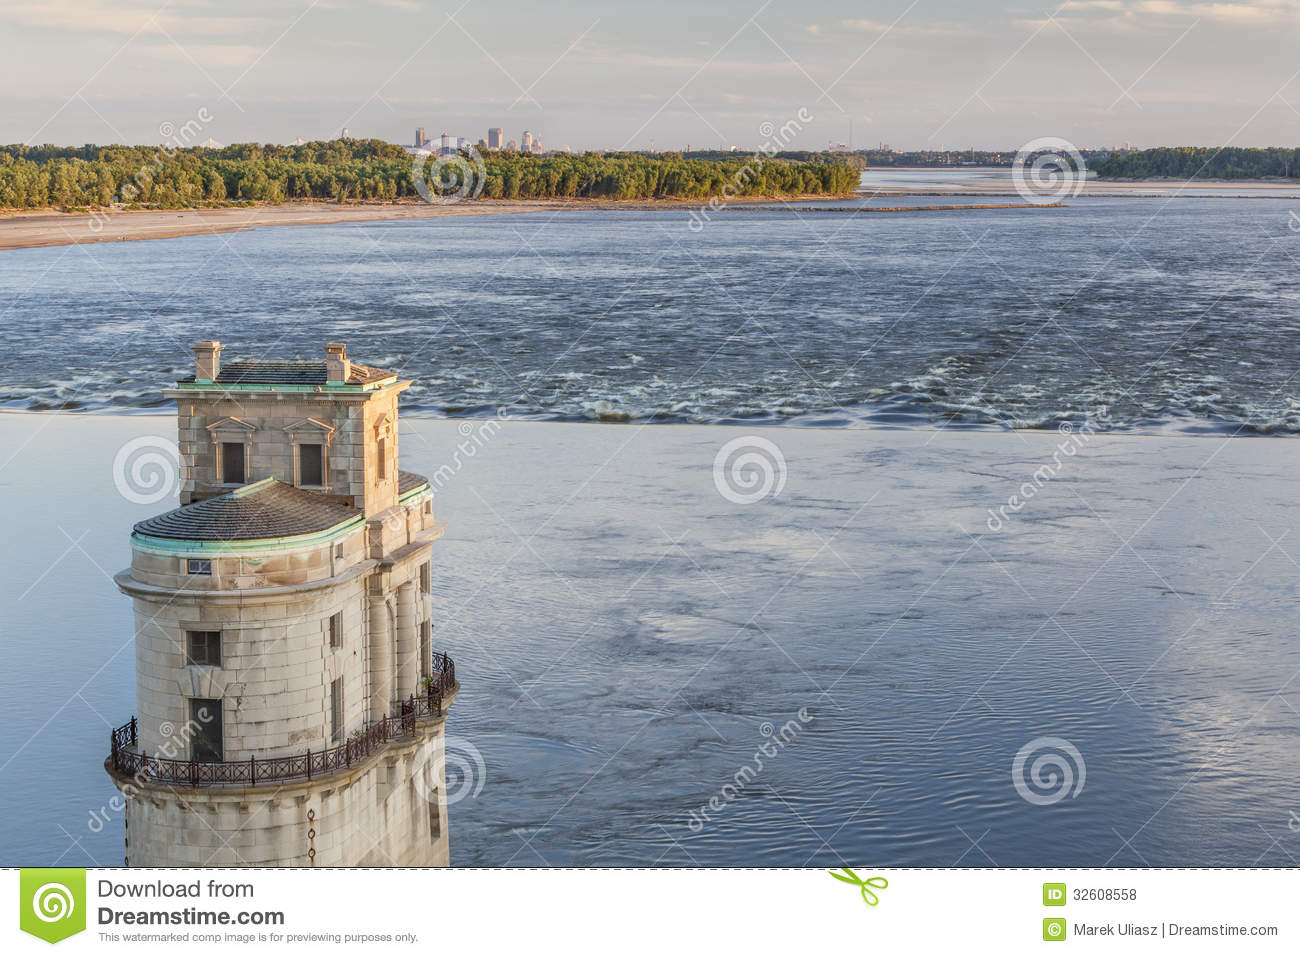 Mississippi River At Chain Of Rocks With Historical Water Intake Tower